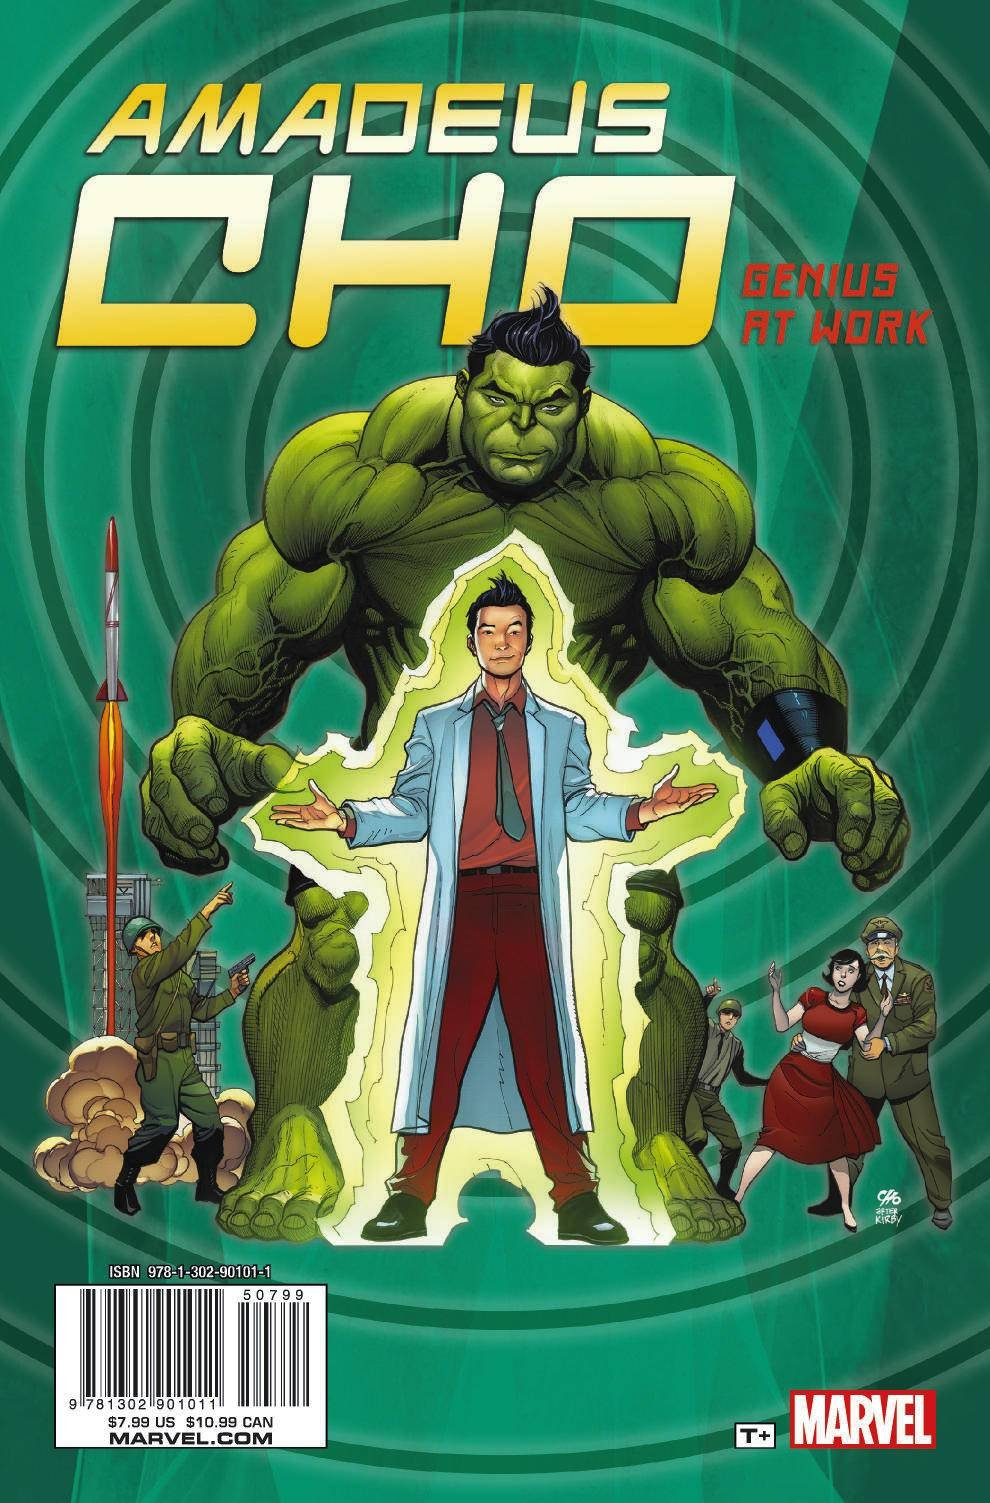 Download Amadeus Cho Genius At Work #1 ebook